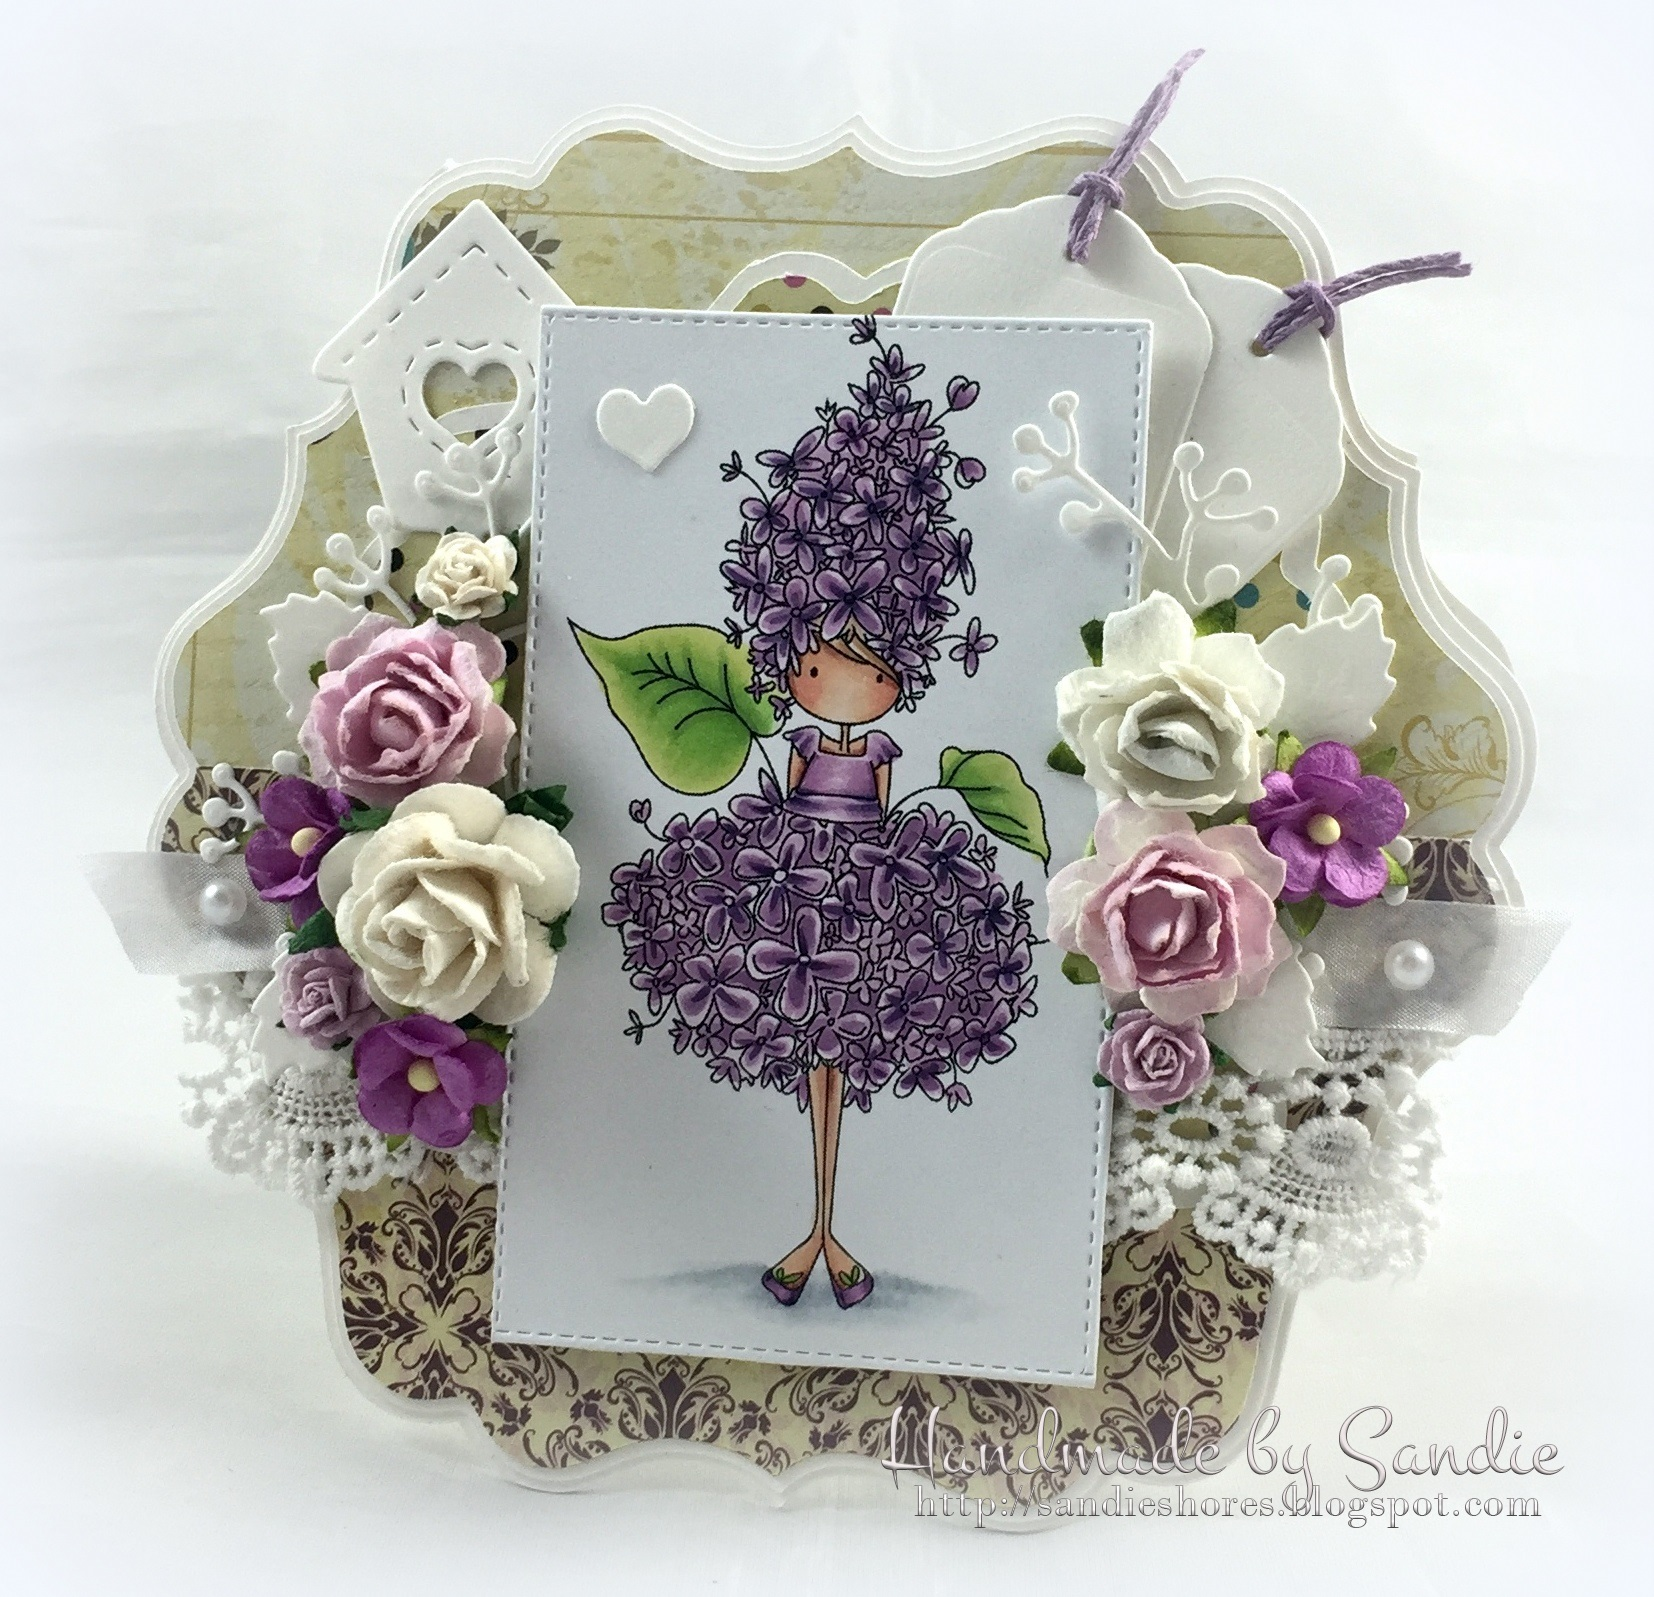 Stamping Bella JANUARY 2017 rubber stamp release- Tiny Townie GARDEN GIRL LILAC card by Sandie Dunne